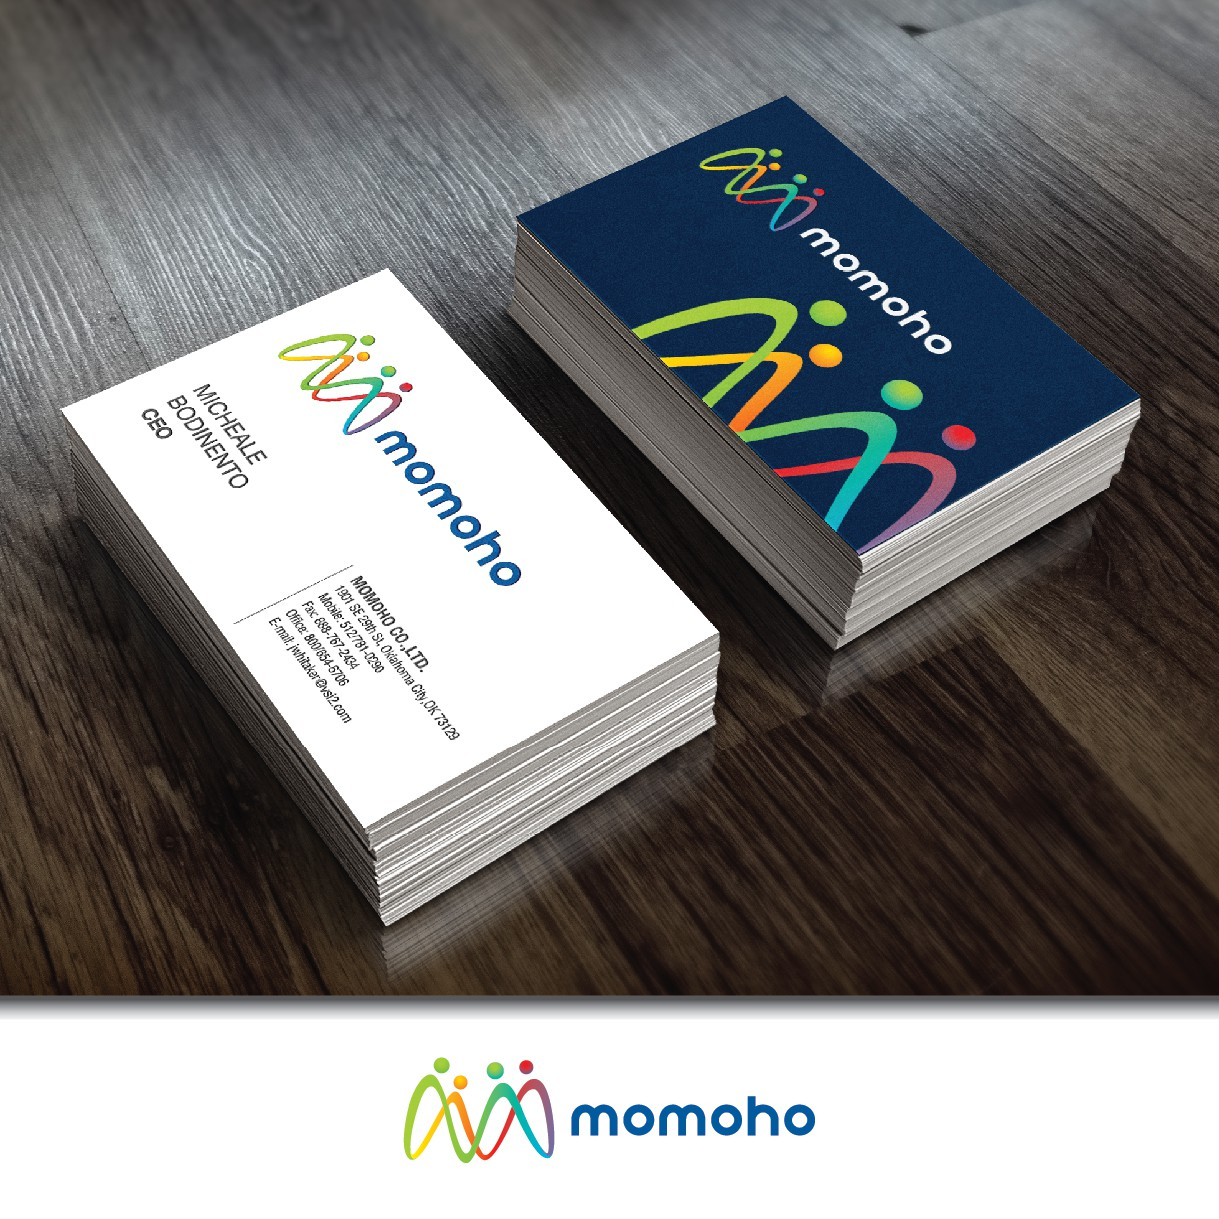 Create an engaging, exciting logo for MoMoHo